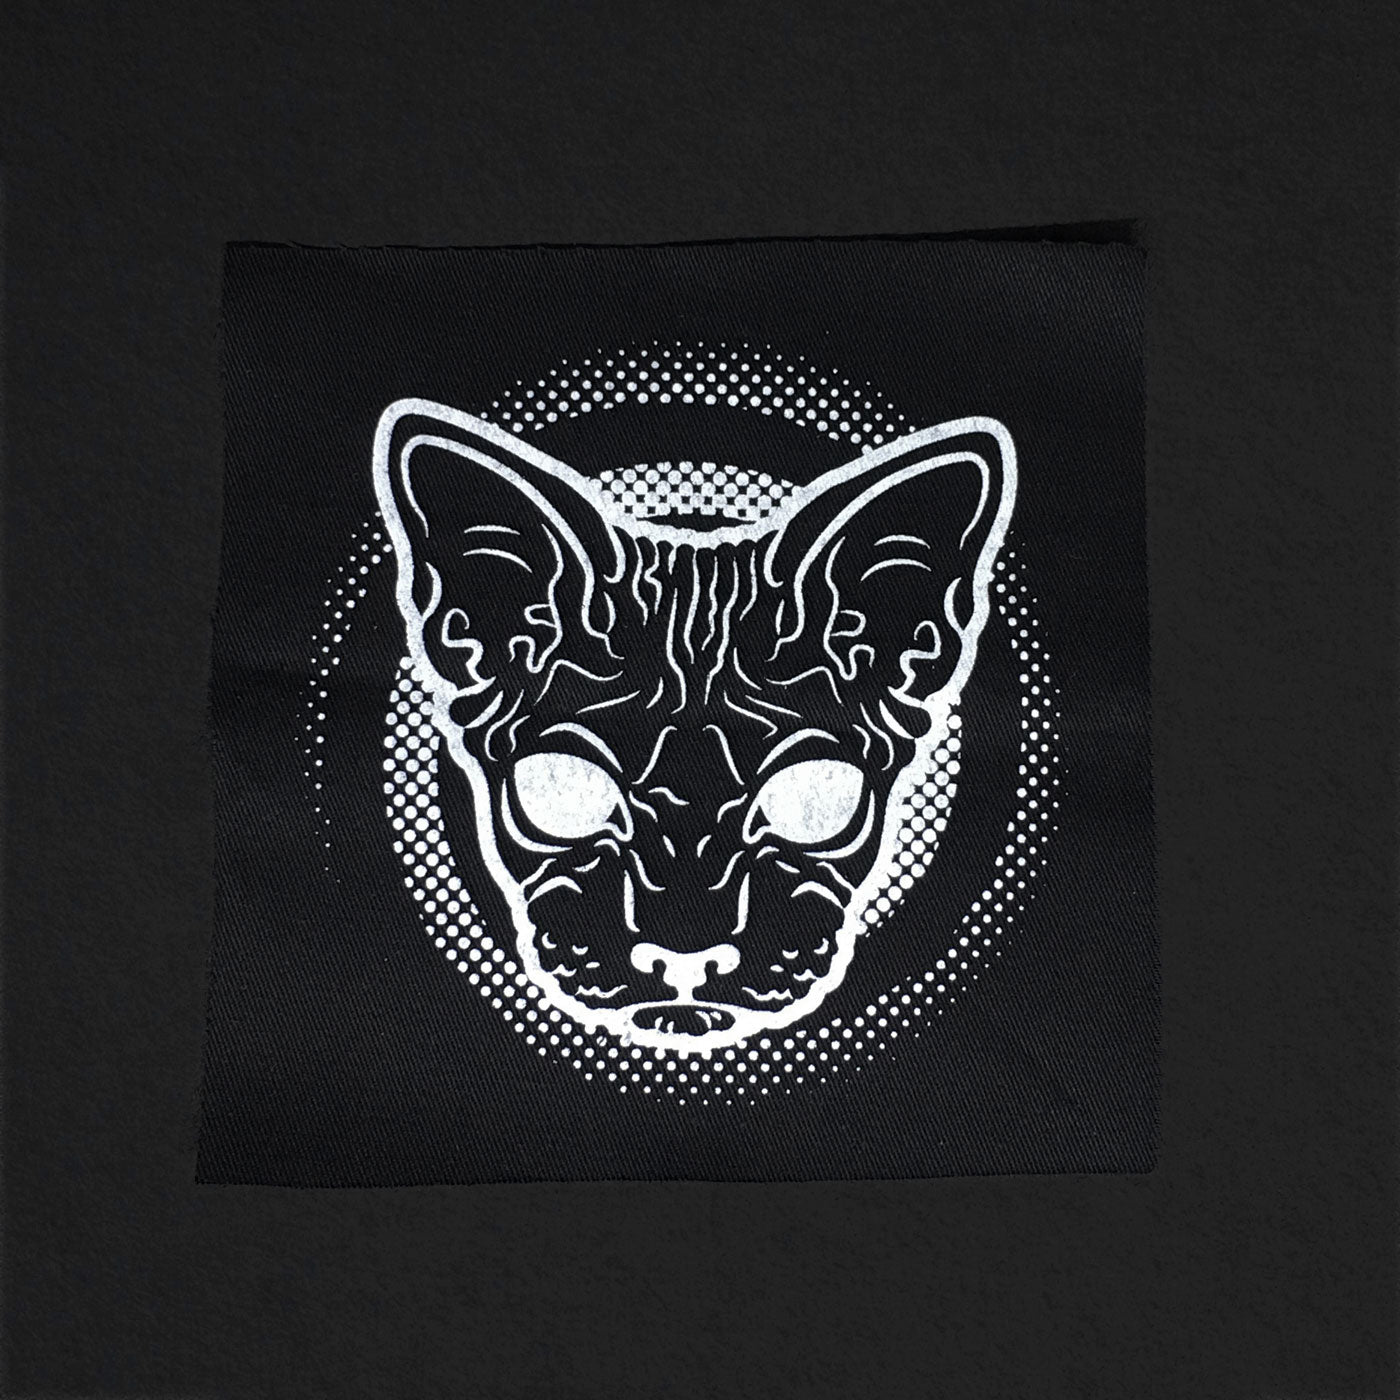 Creep Cat Patch